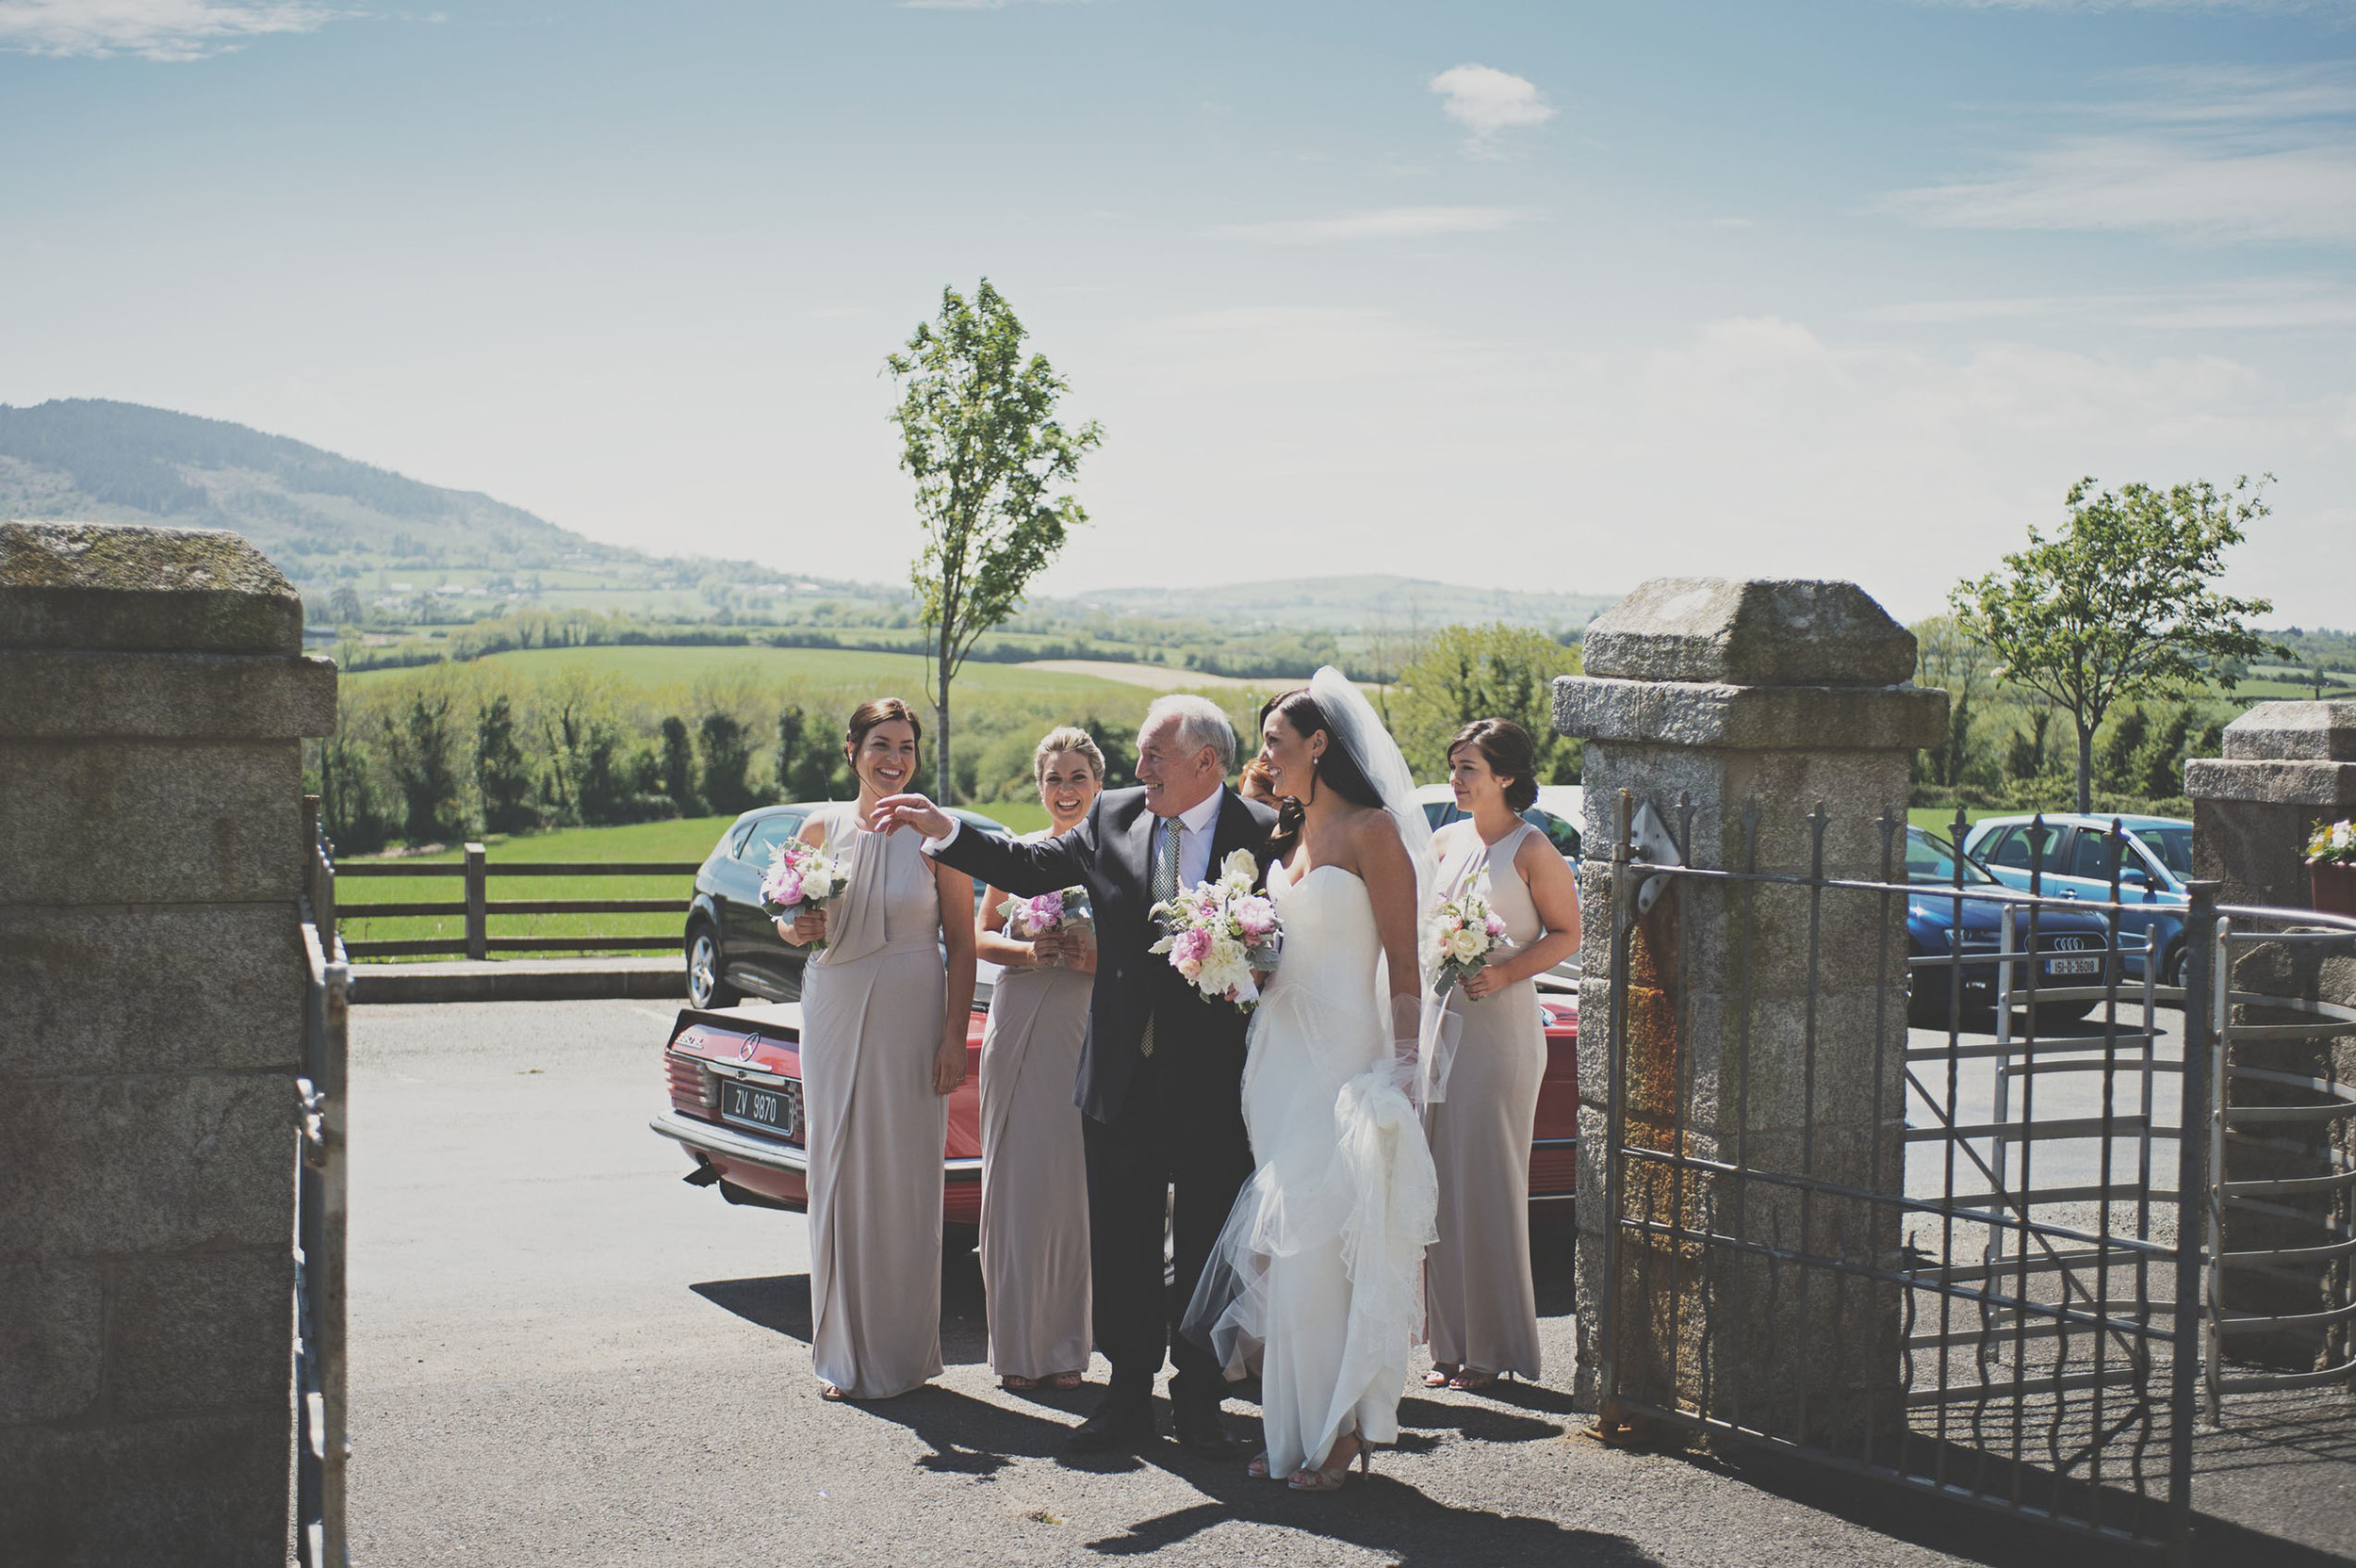 Julie & Matt's Seafield Wedding by Studio33weddings 031.jpg